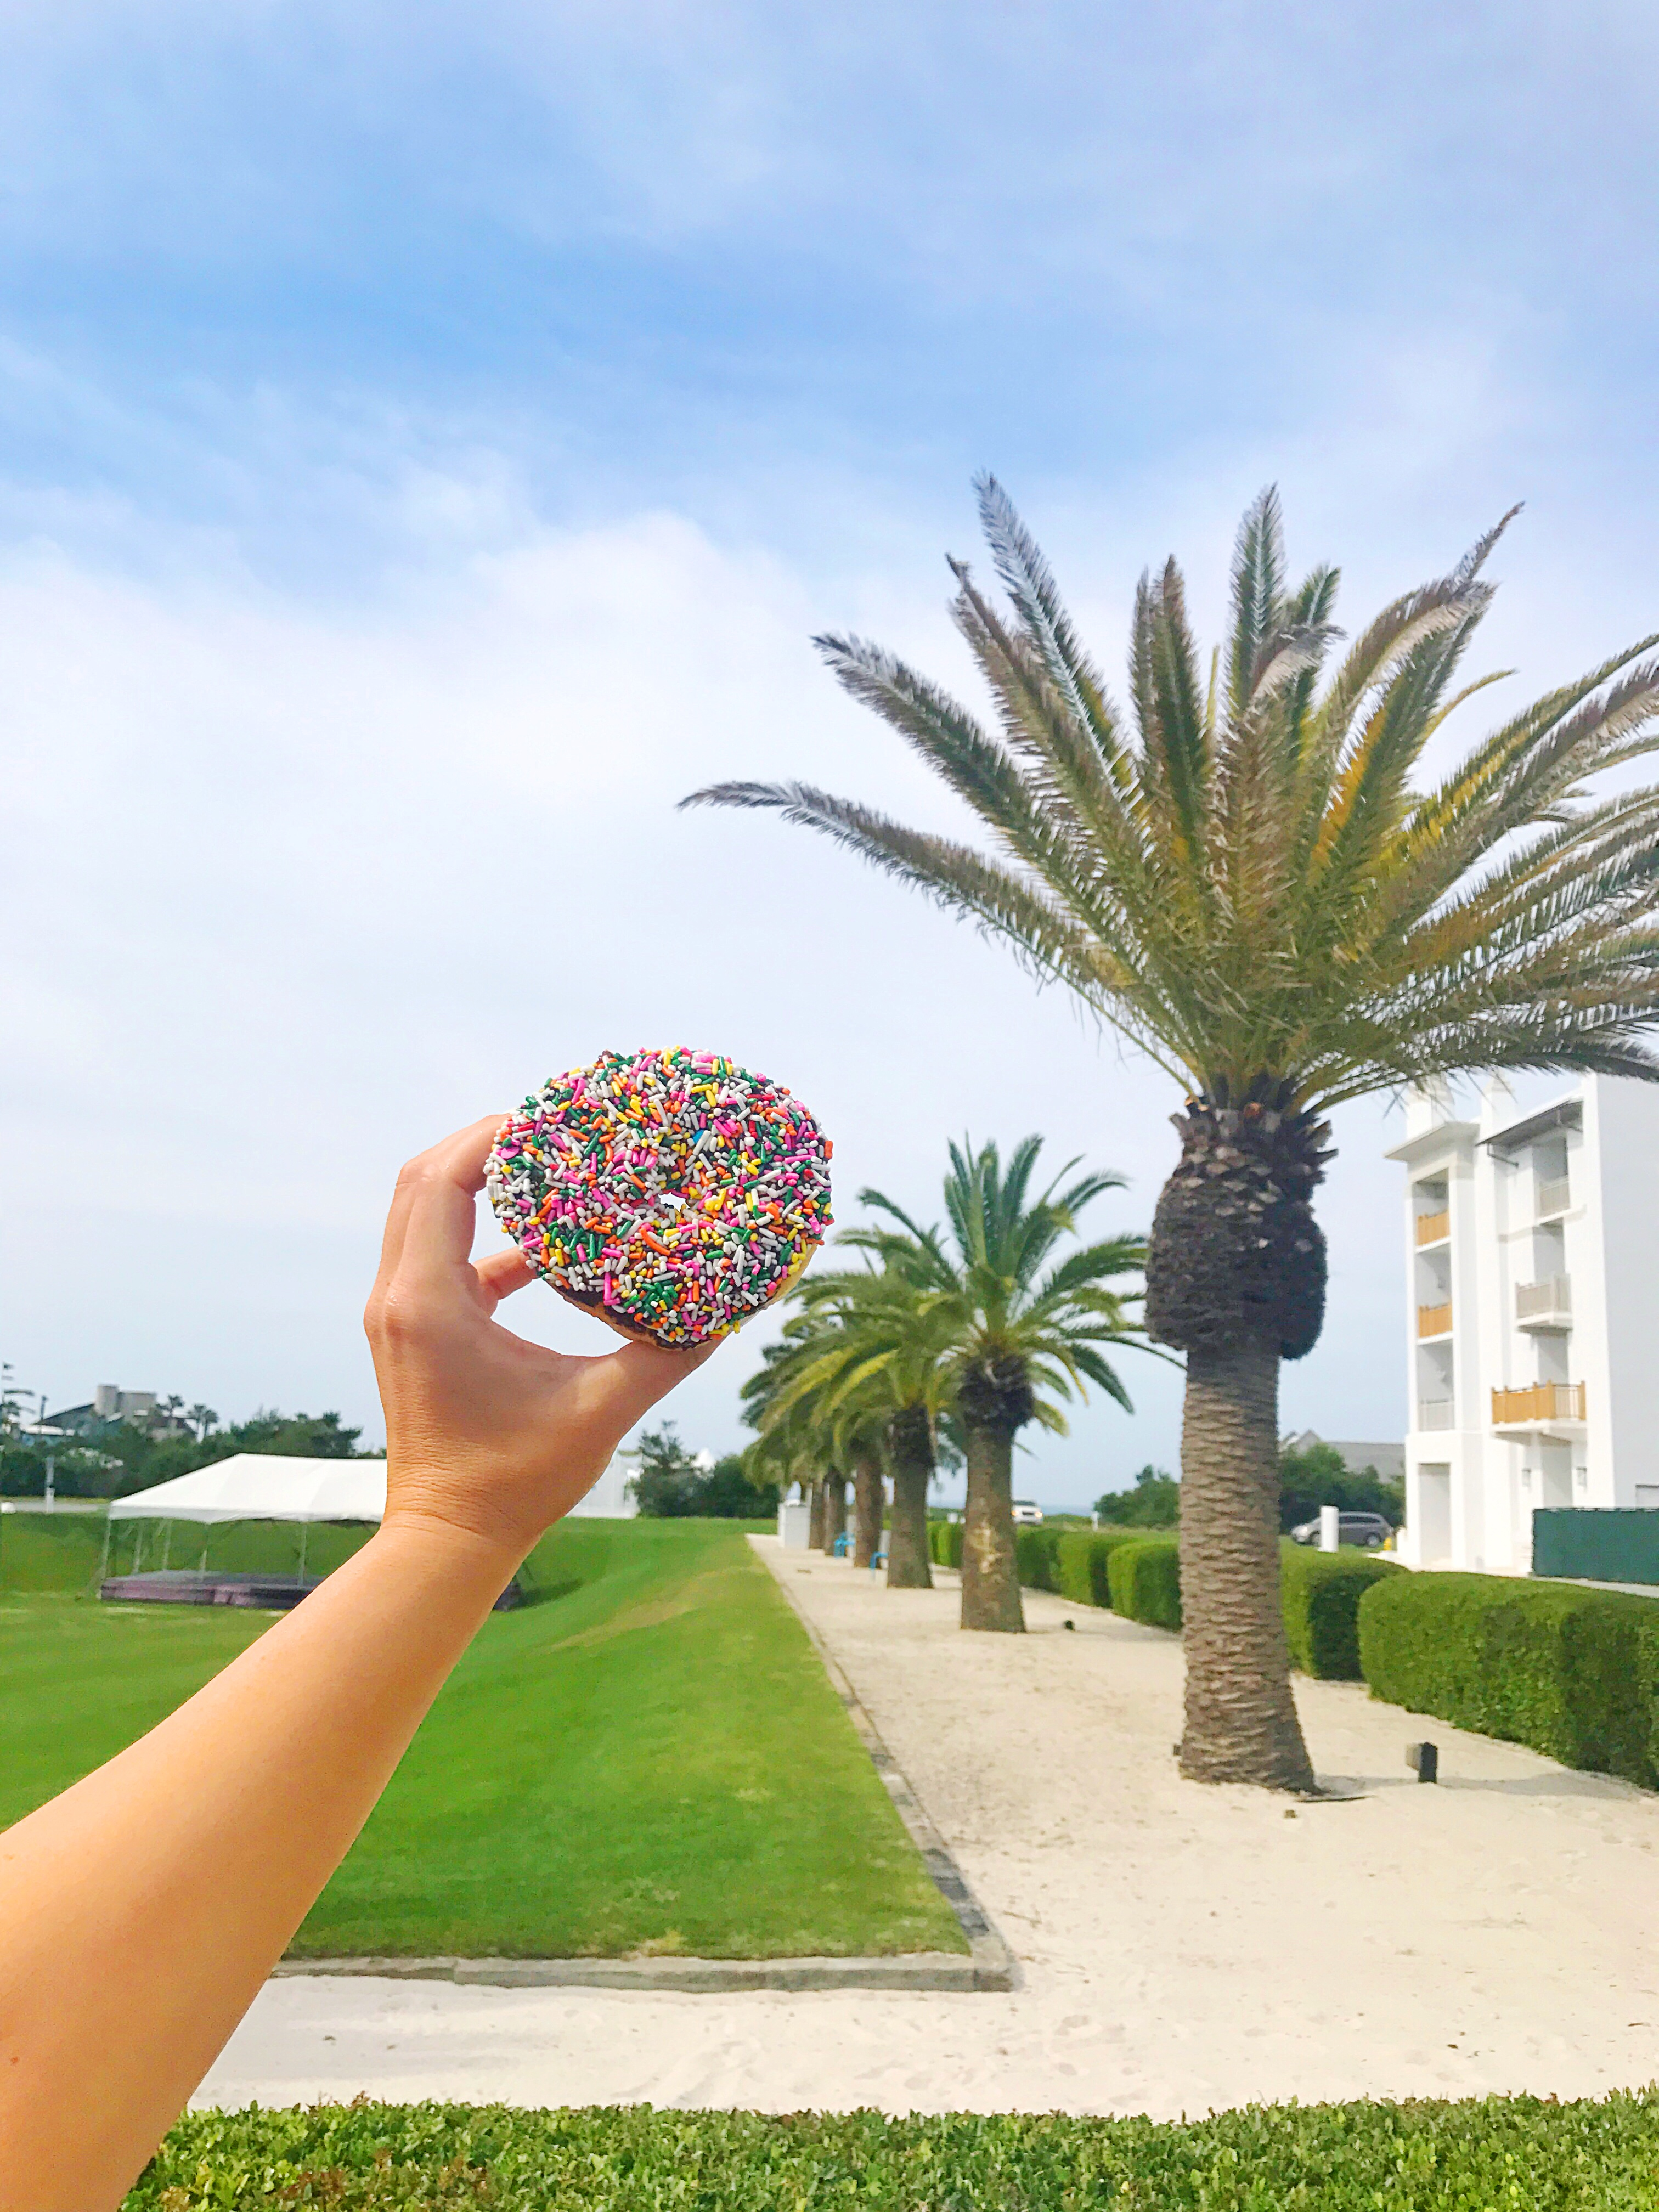 Alys Beach - Charlie's Donuts - 30A Blogger Vacay